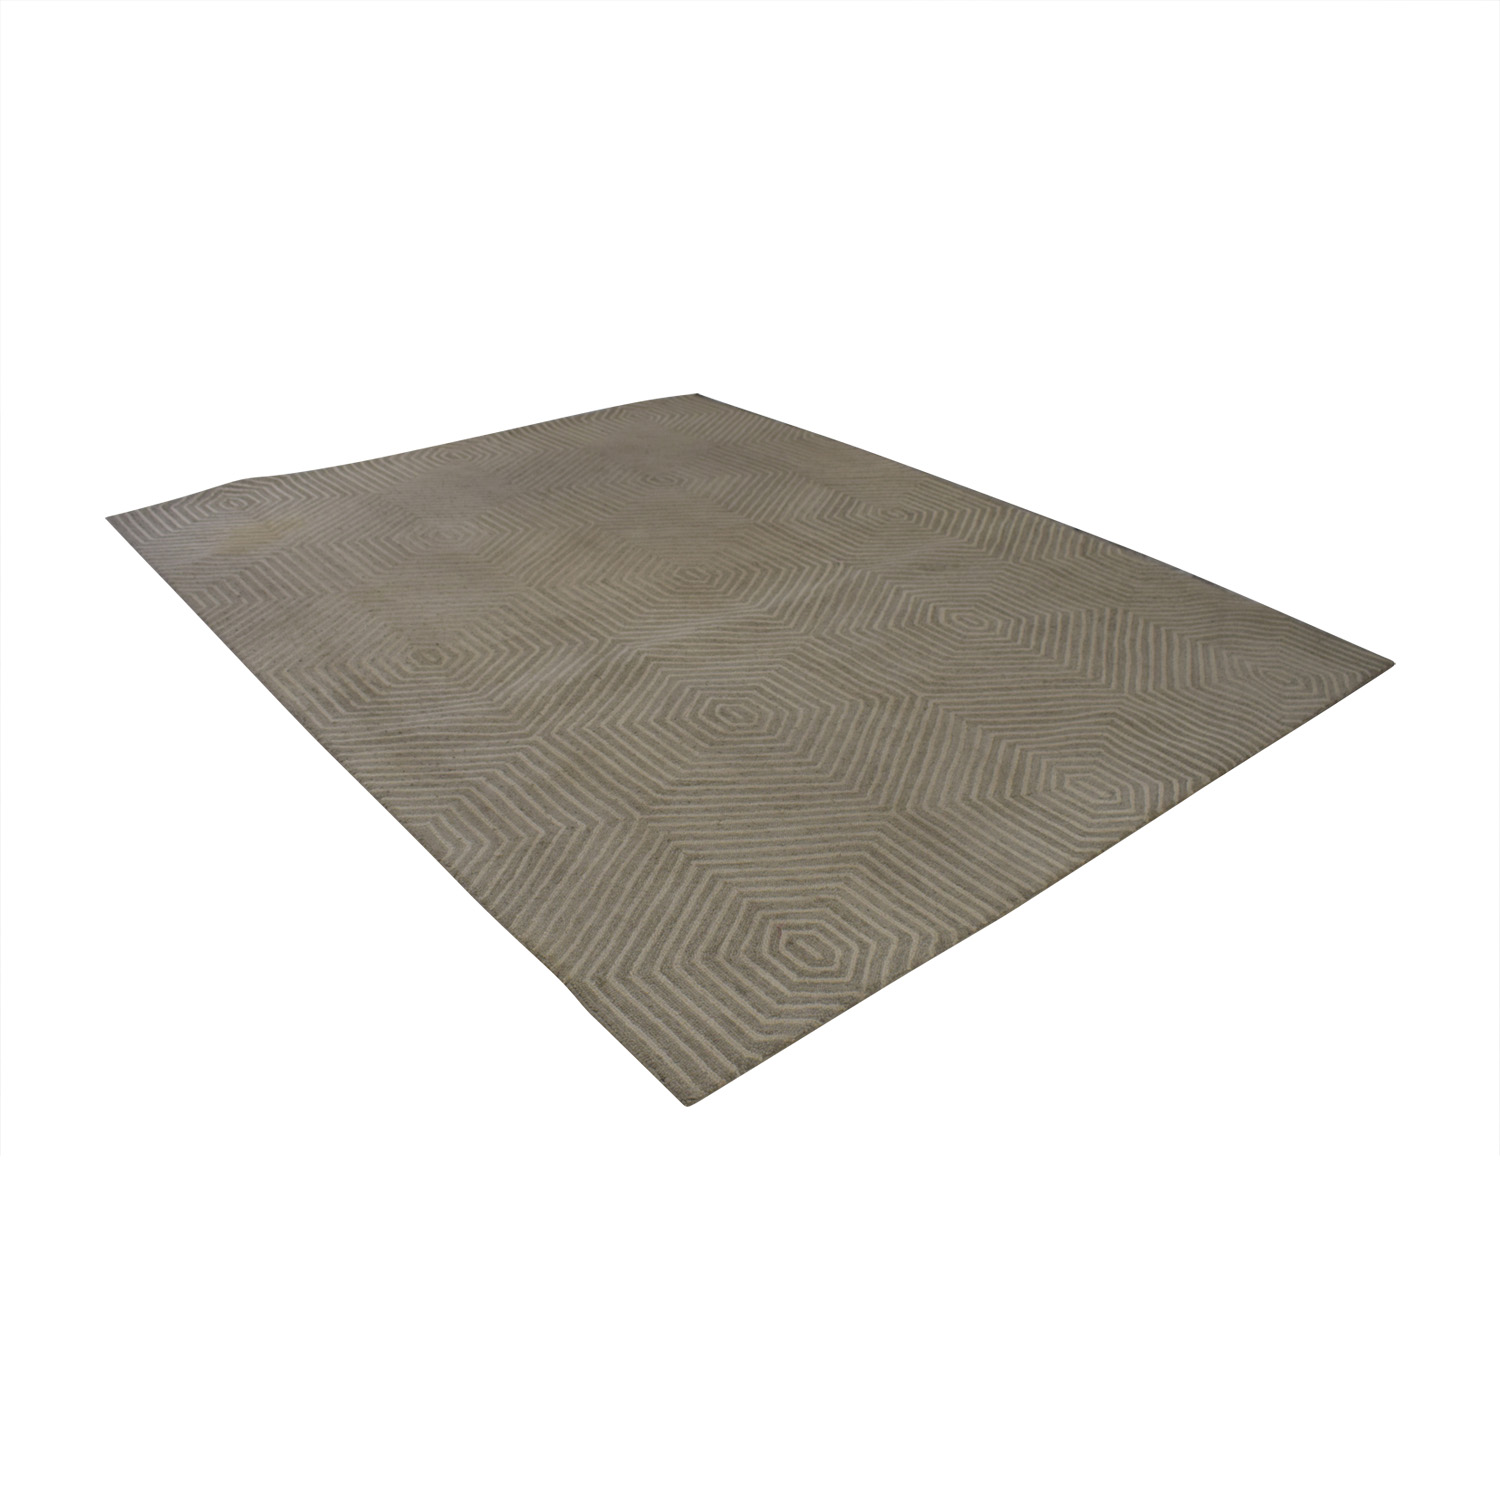 buy Homegoods Grey and Beige Wool Rug Homegoods Rugs